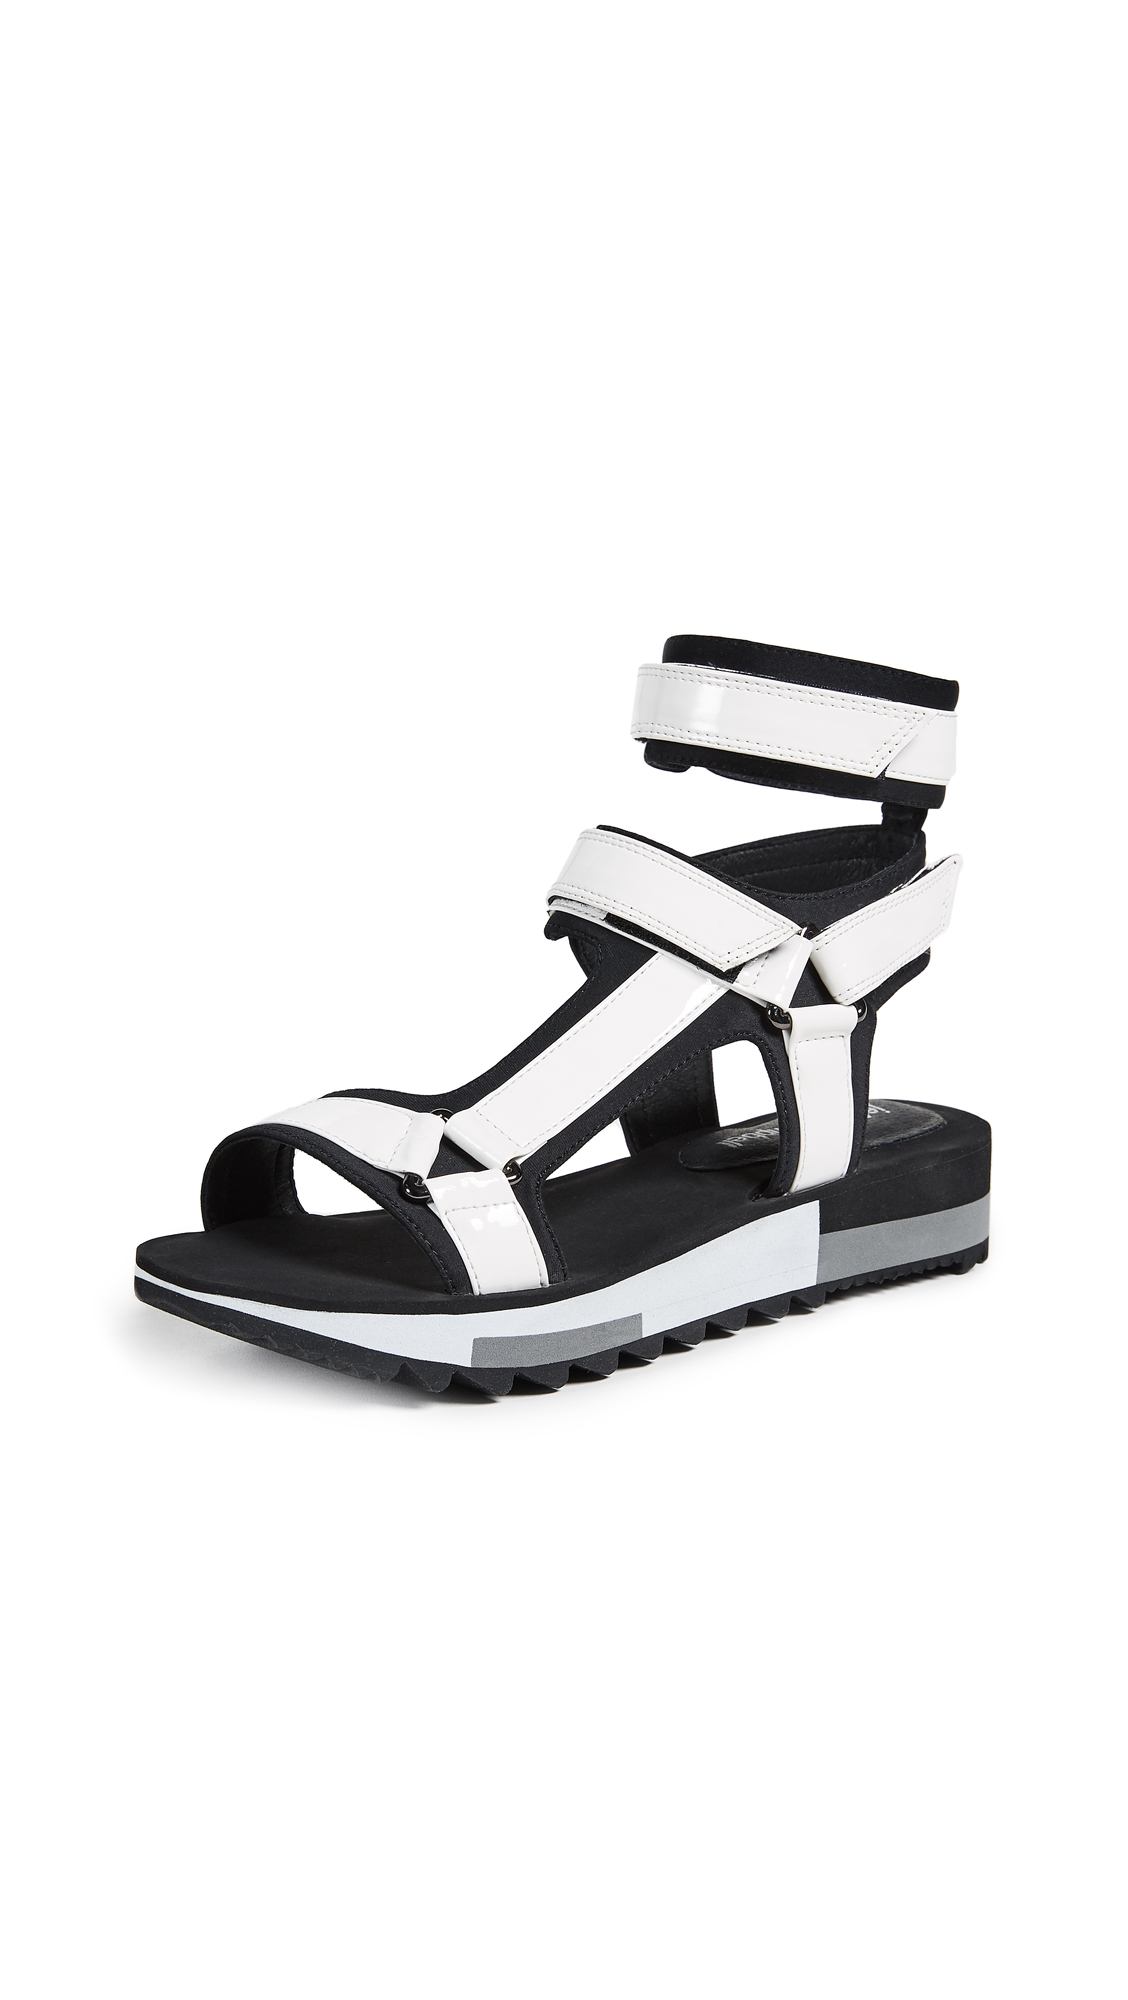 Jeffrey Campbell Bayport Sporty Sandals